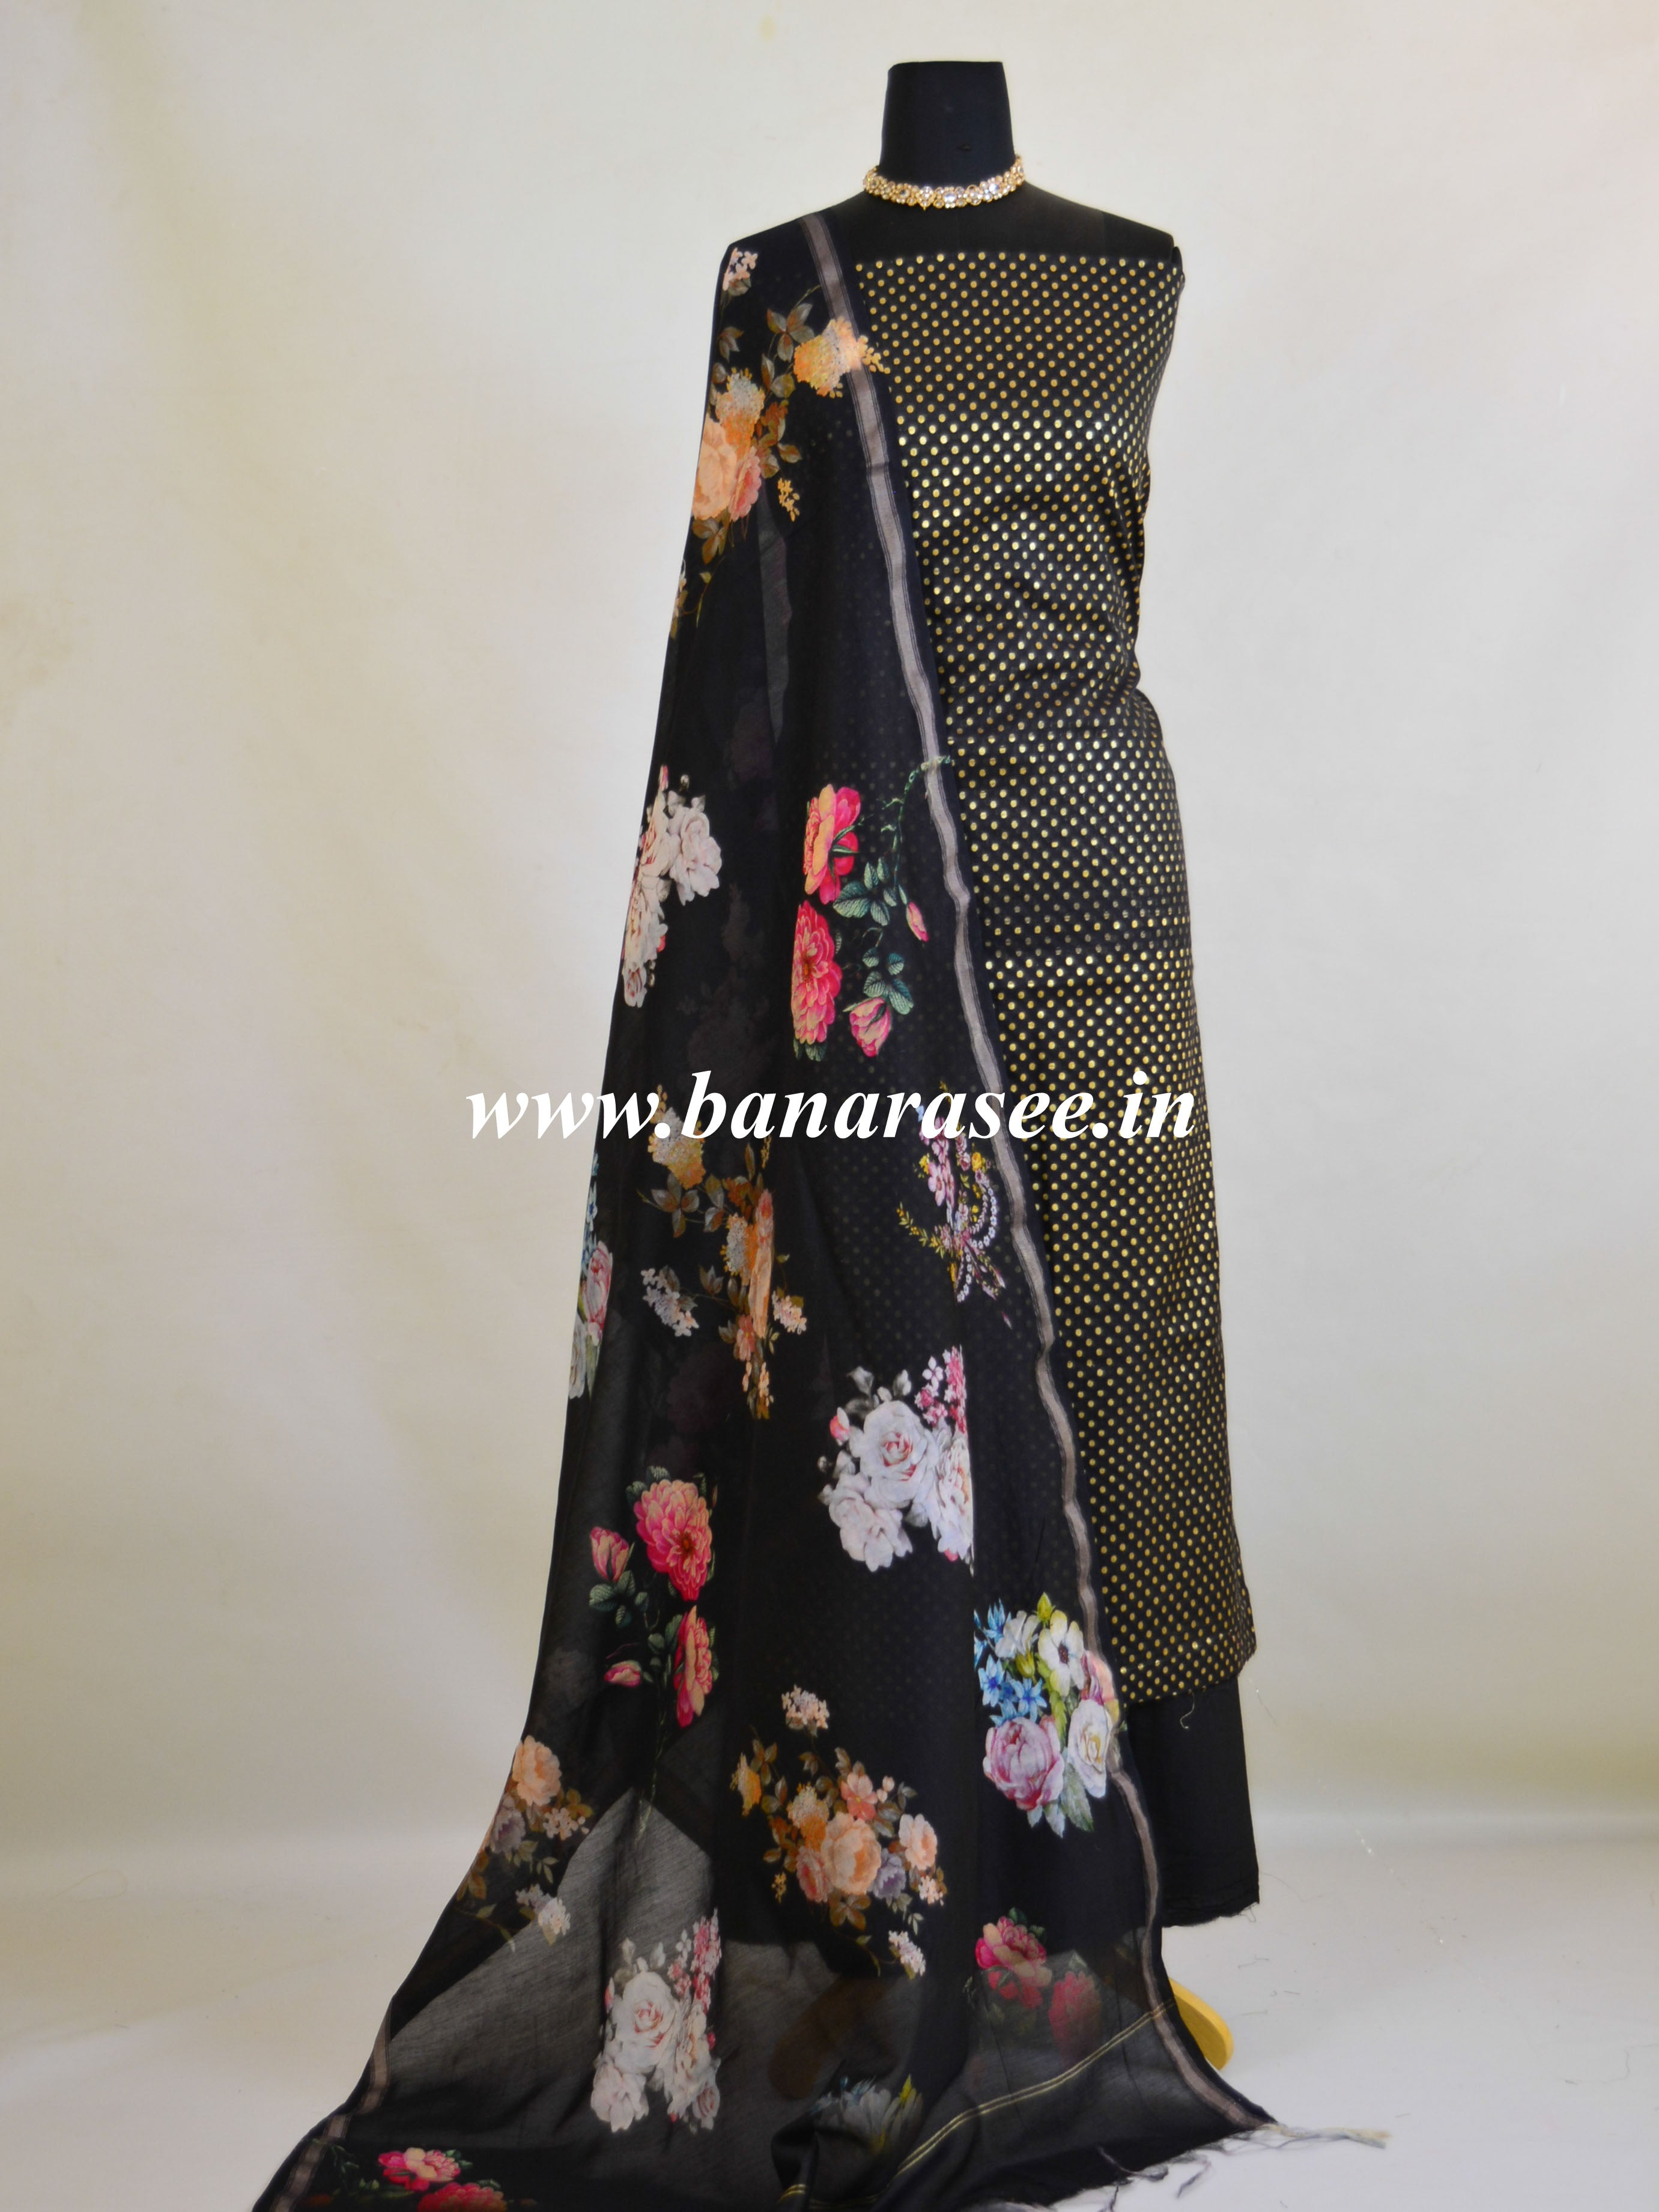 Banarasee Handloom Chanderi Cotton Polka Dot Salwar Kameez With Digital Print Dupatta-Black